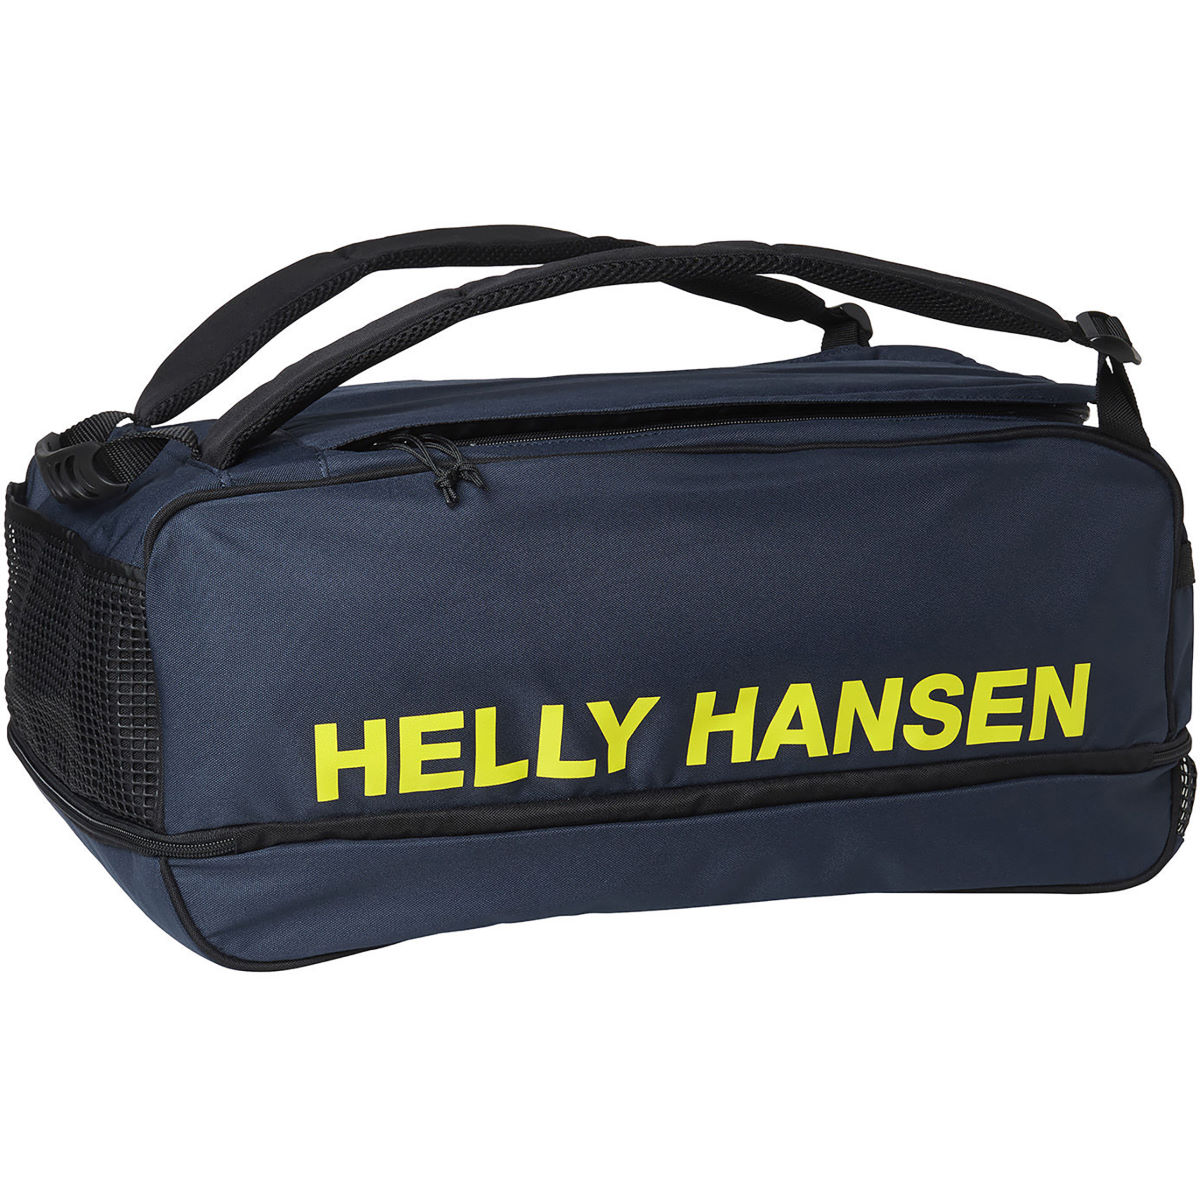 Helly Hansen Helly Hansen Racing Bag   Duffle Bags